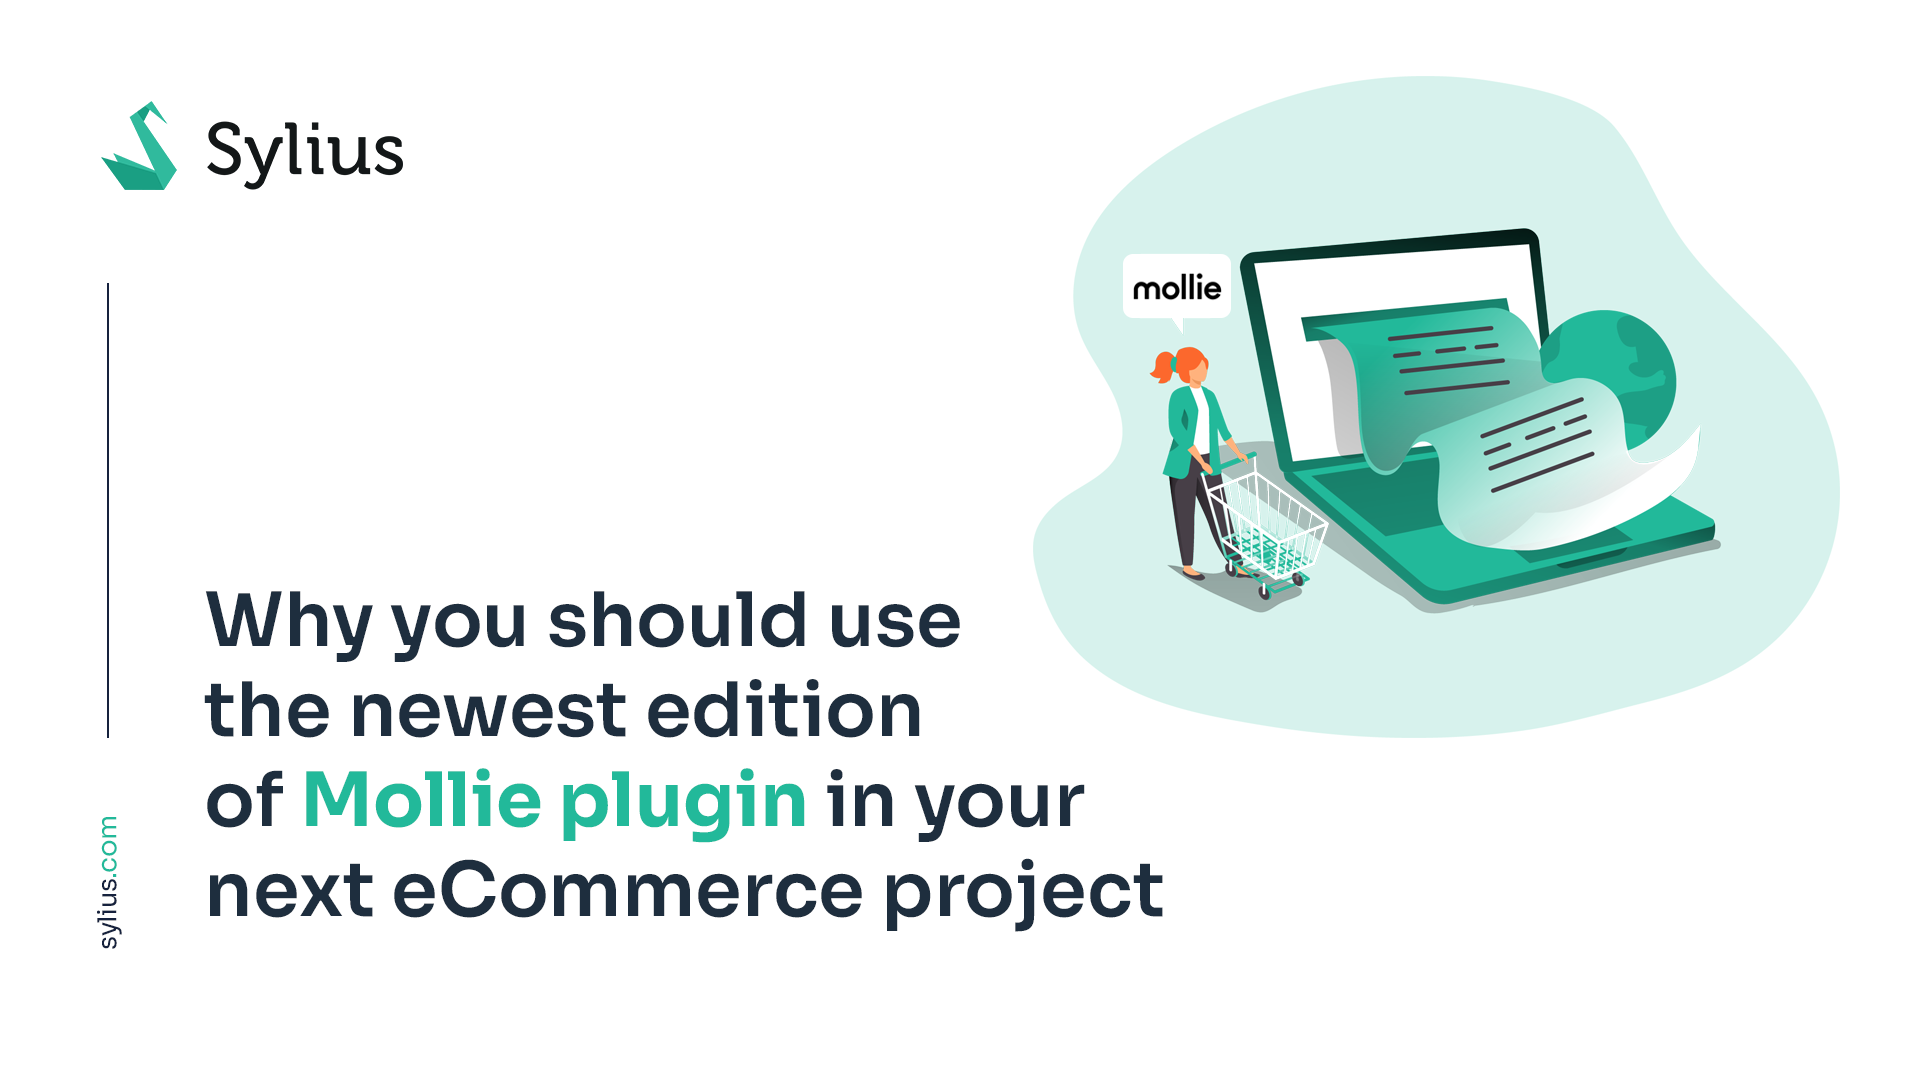 Why you should use the newest edition of the Mollie plugin in your next eCommerce project